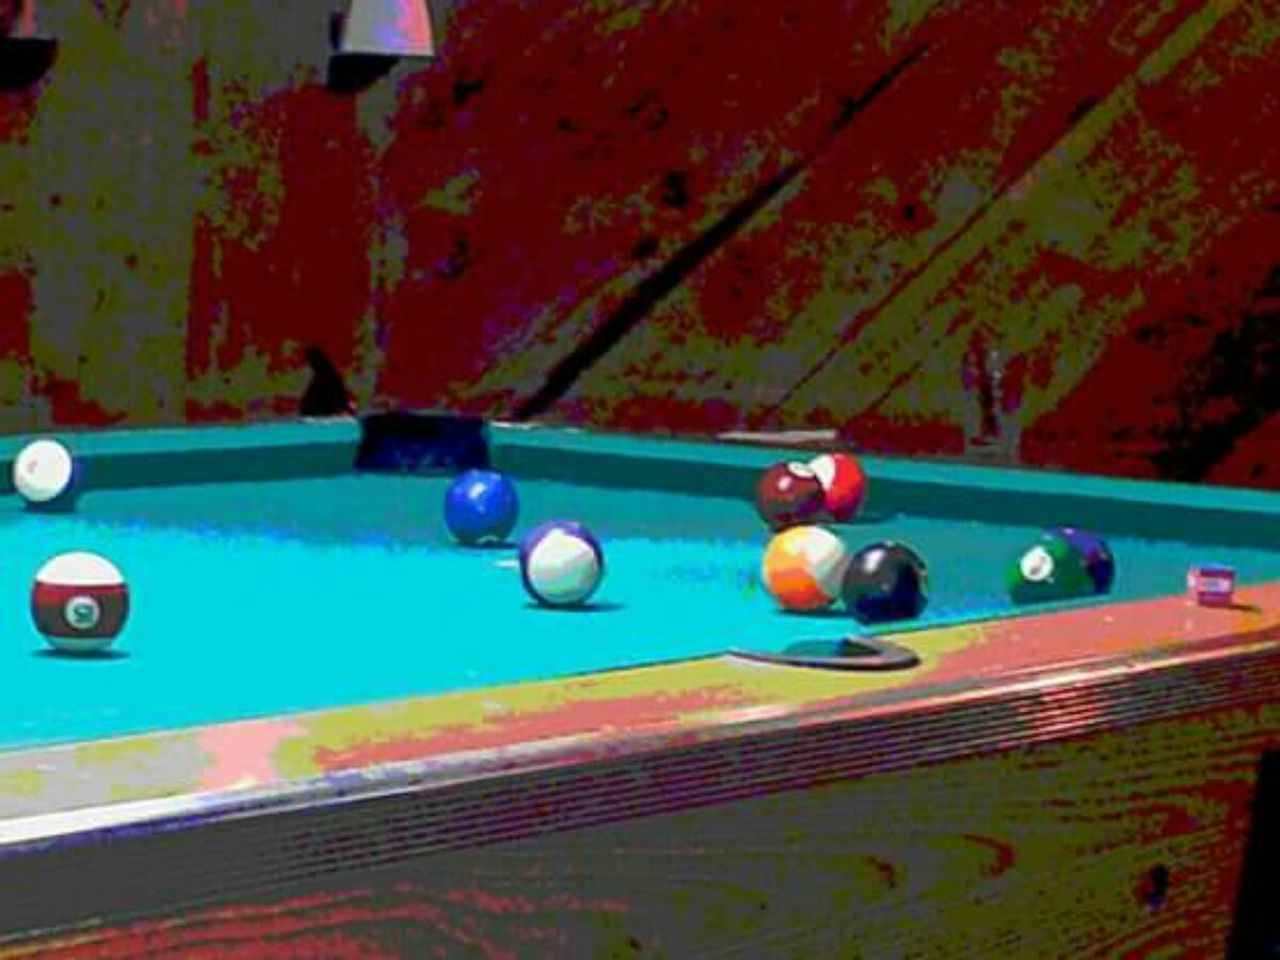 pool table, pool ball, ball, leisure games, pool - cue sport, sport, indoors, no people, close-up, snooker, pool cue, snooker and pool, day